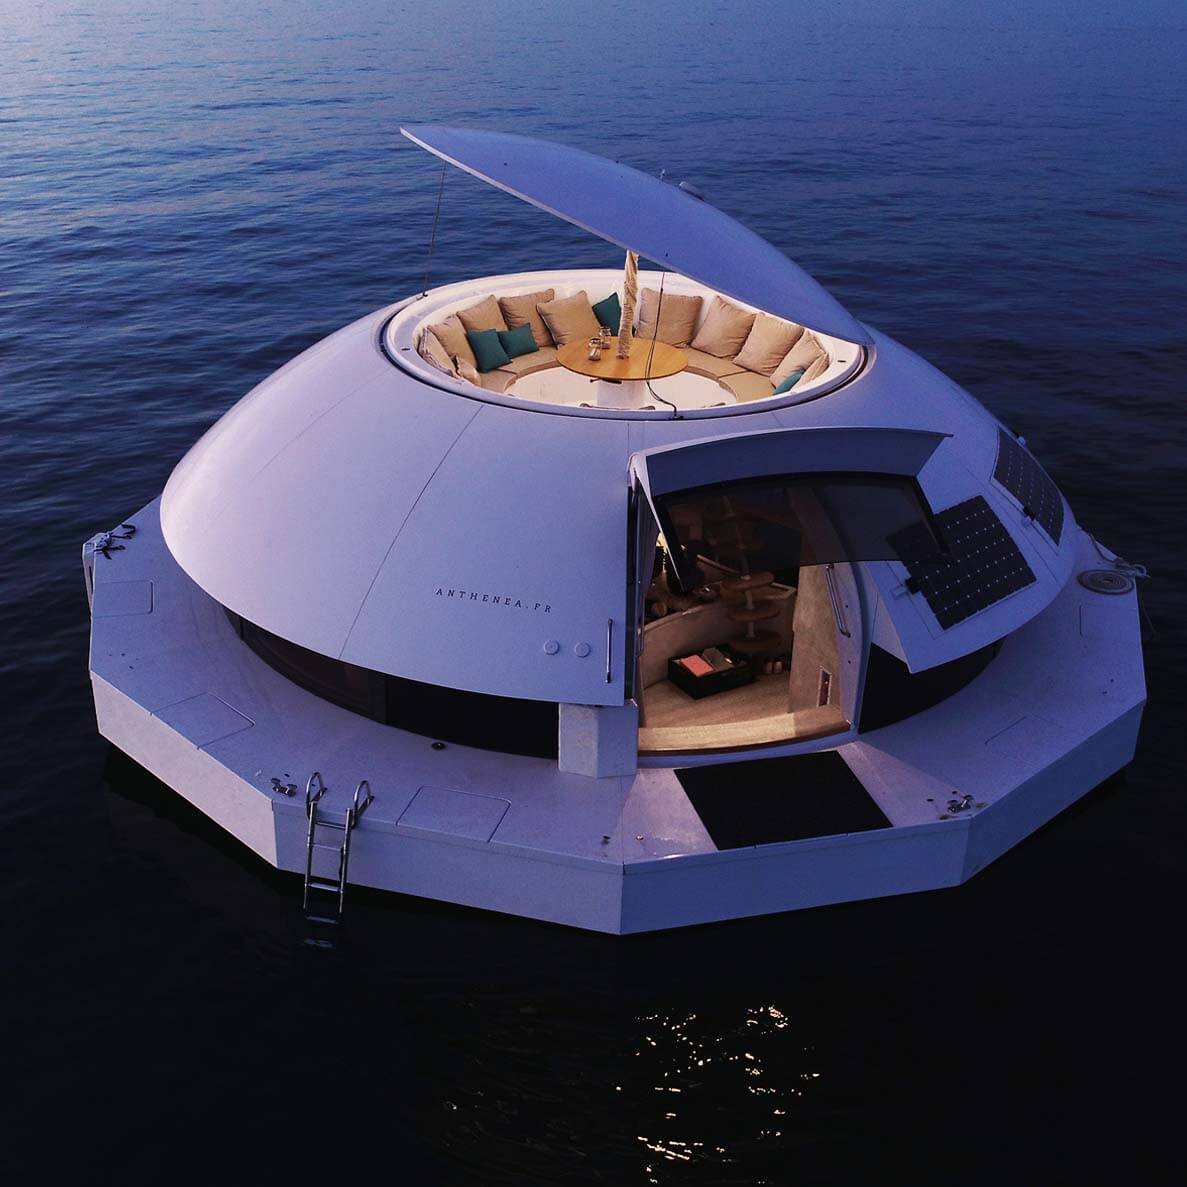 The Anthénea floating hotel